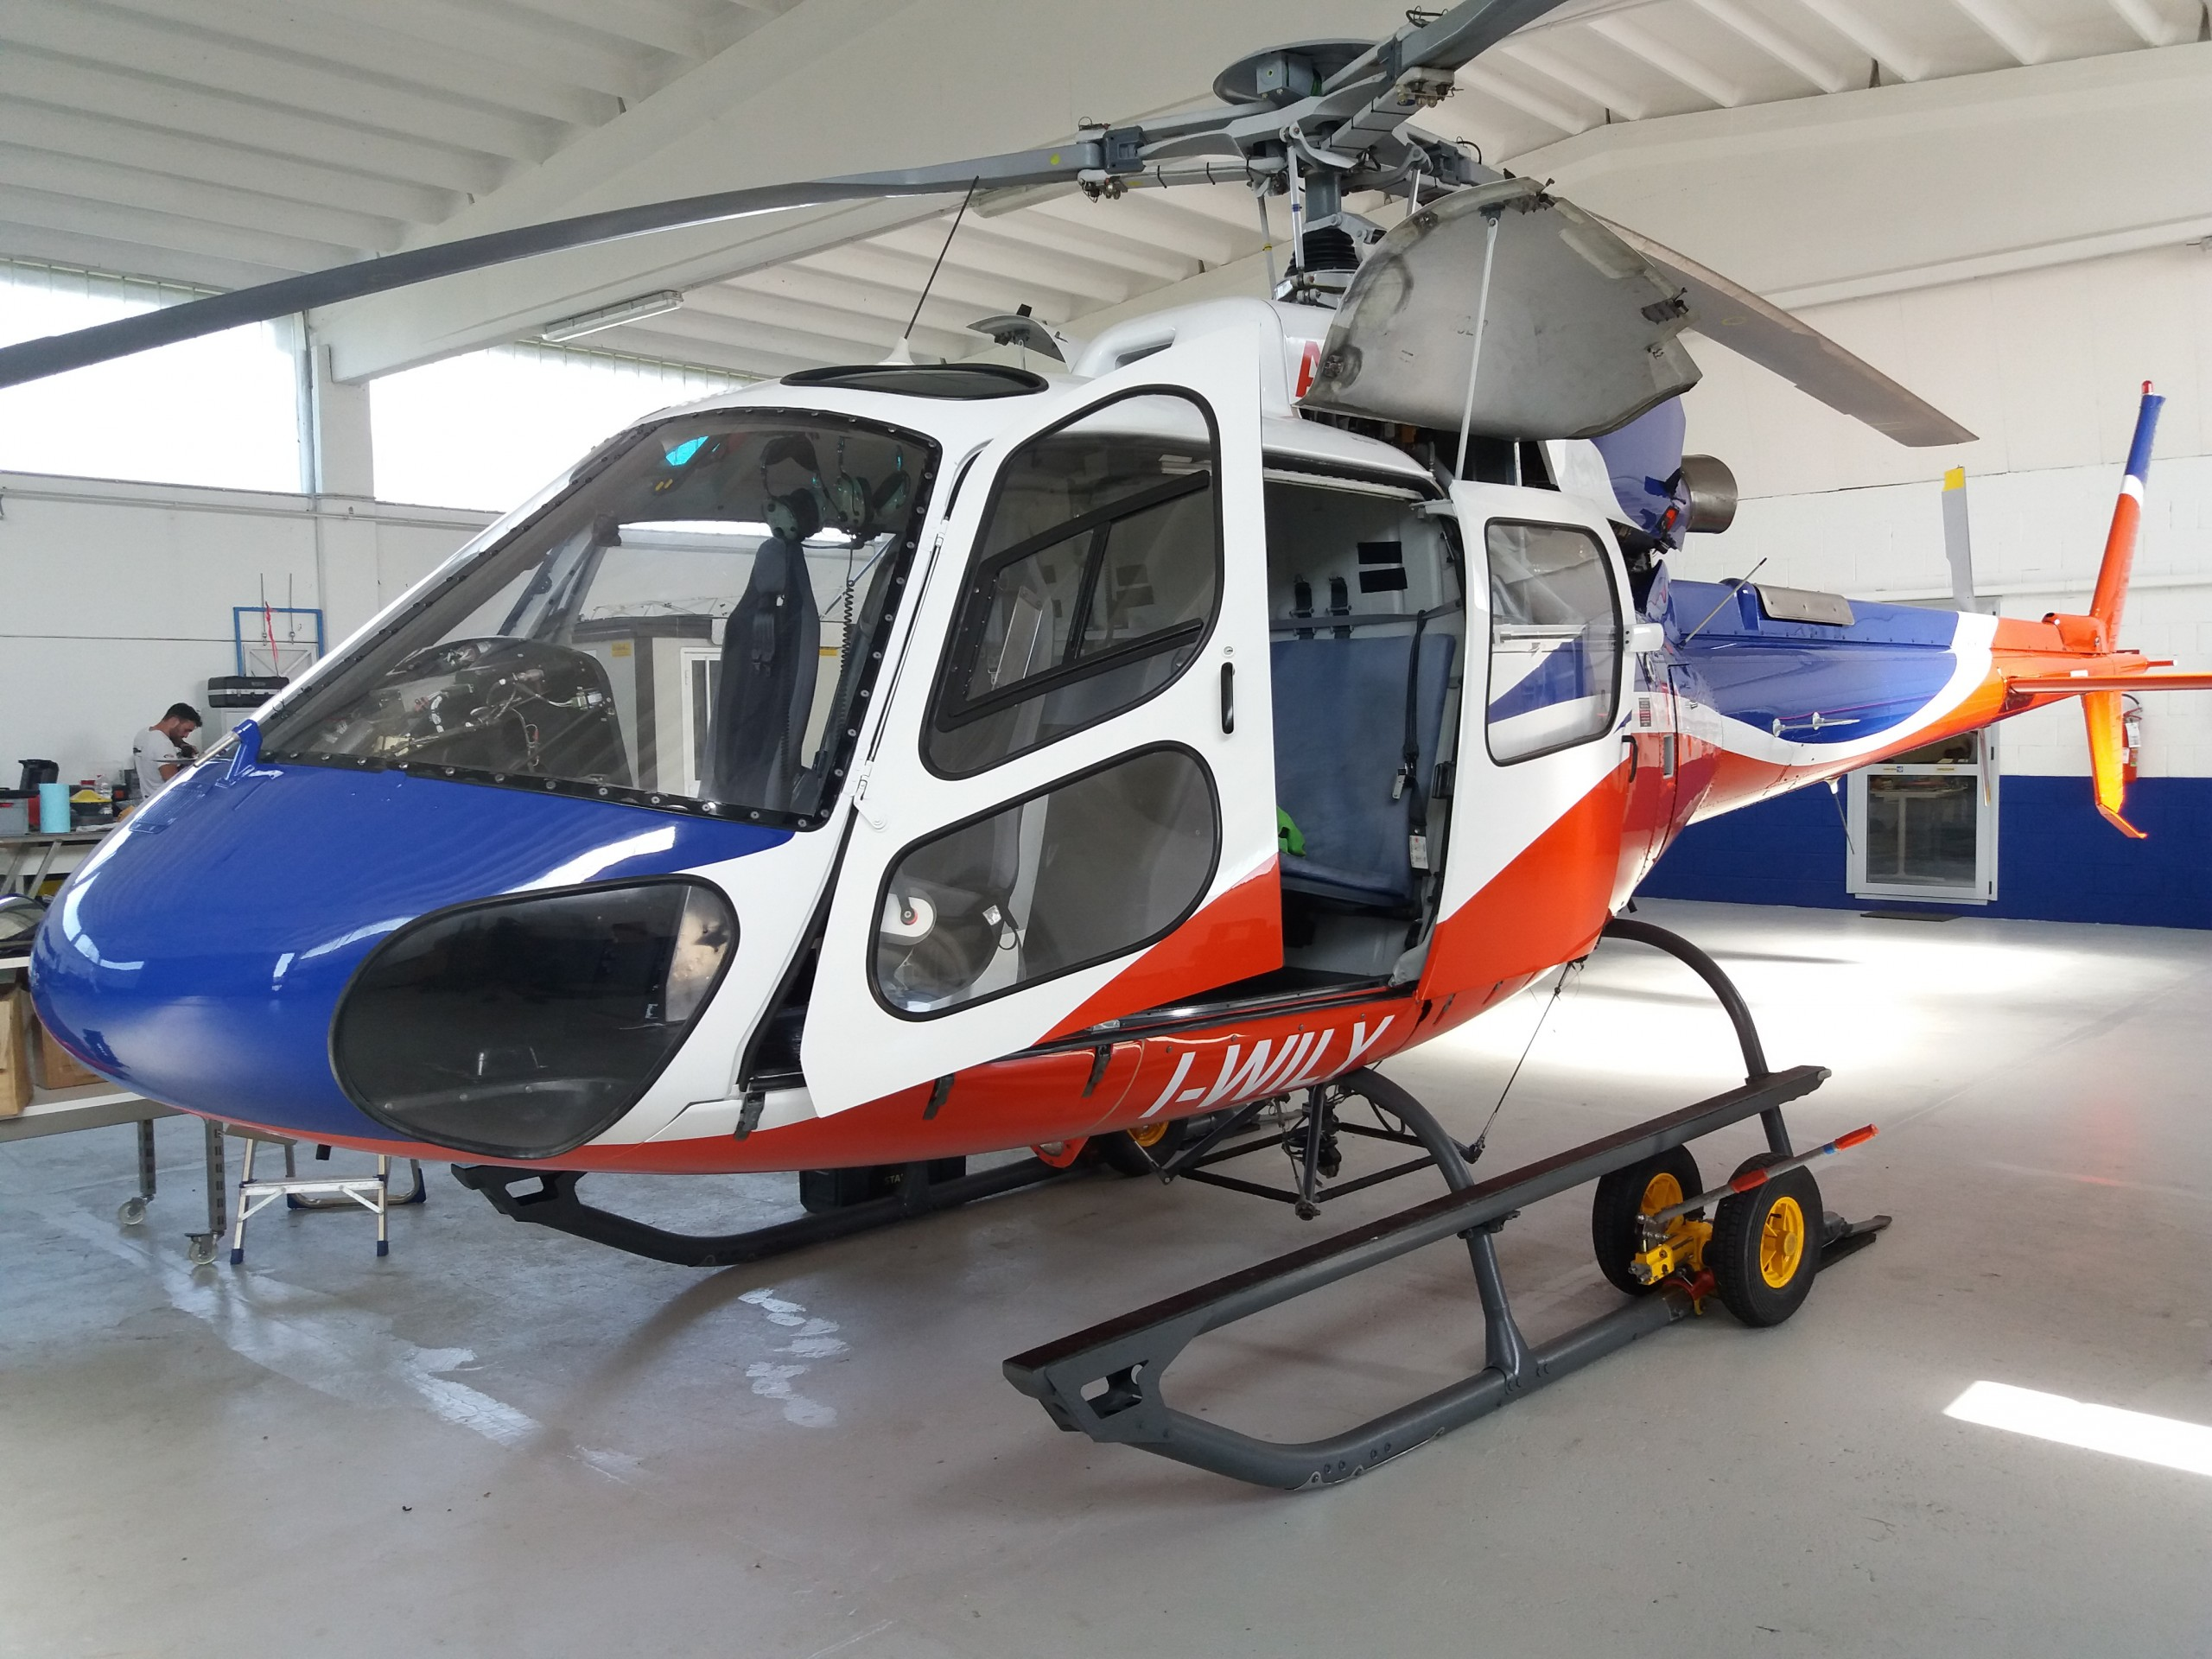 A helicopter in its hanger